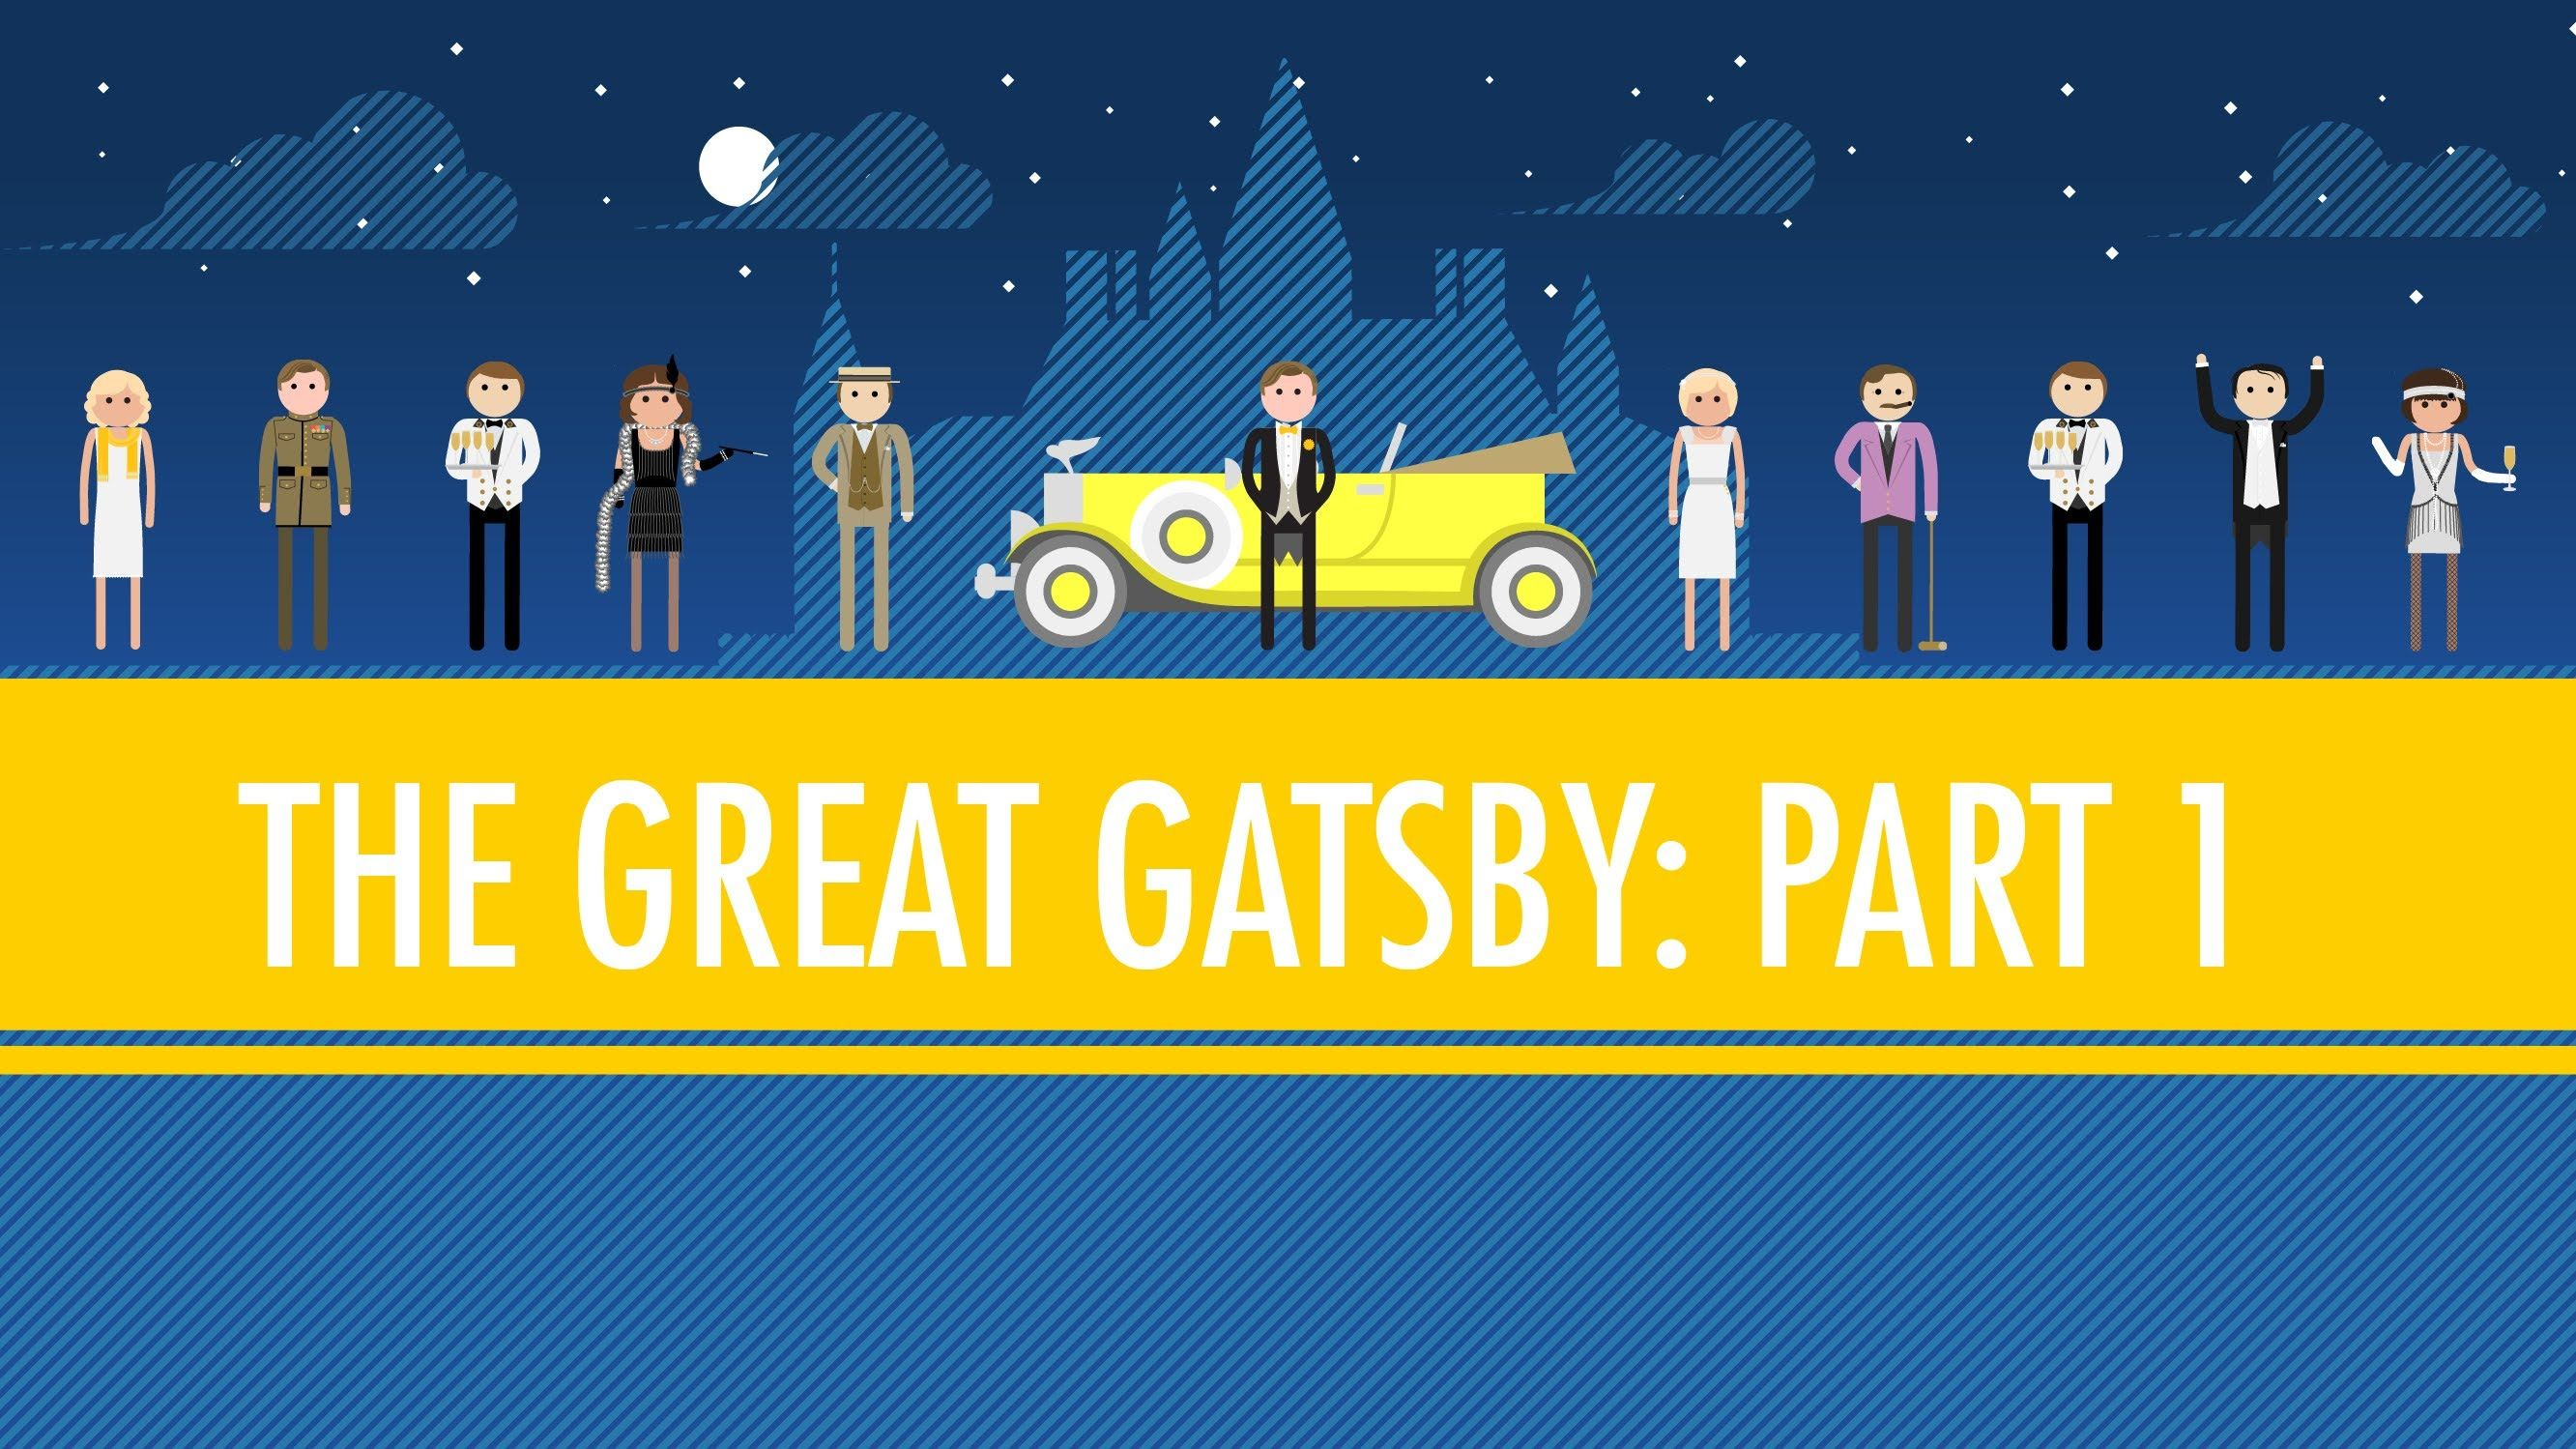 The Great Gatsby Explained By Crash Course And John Green